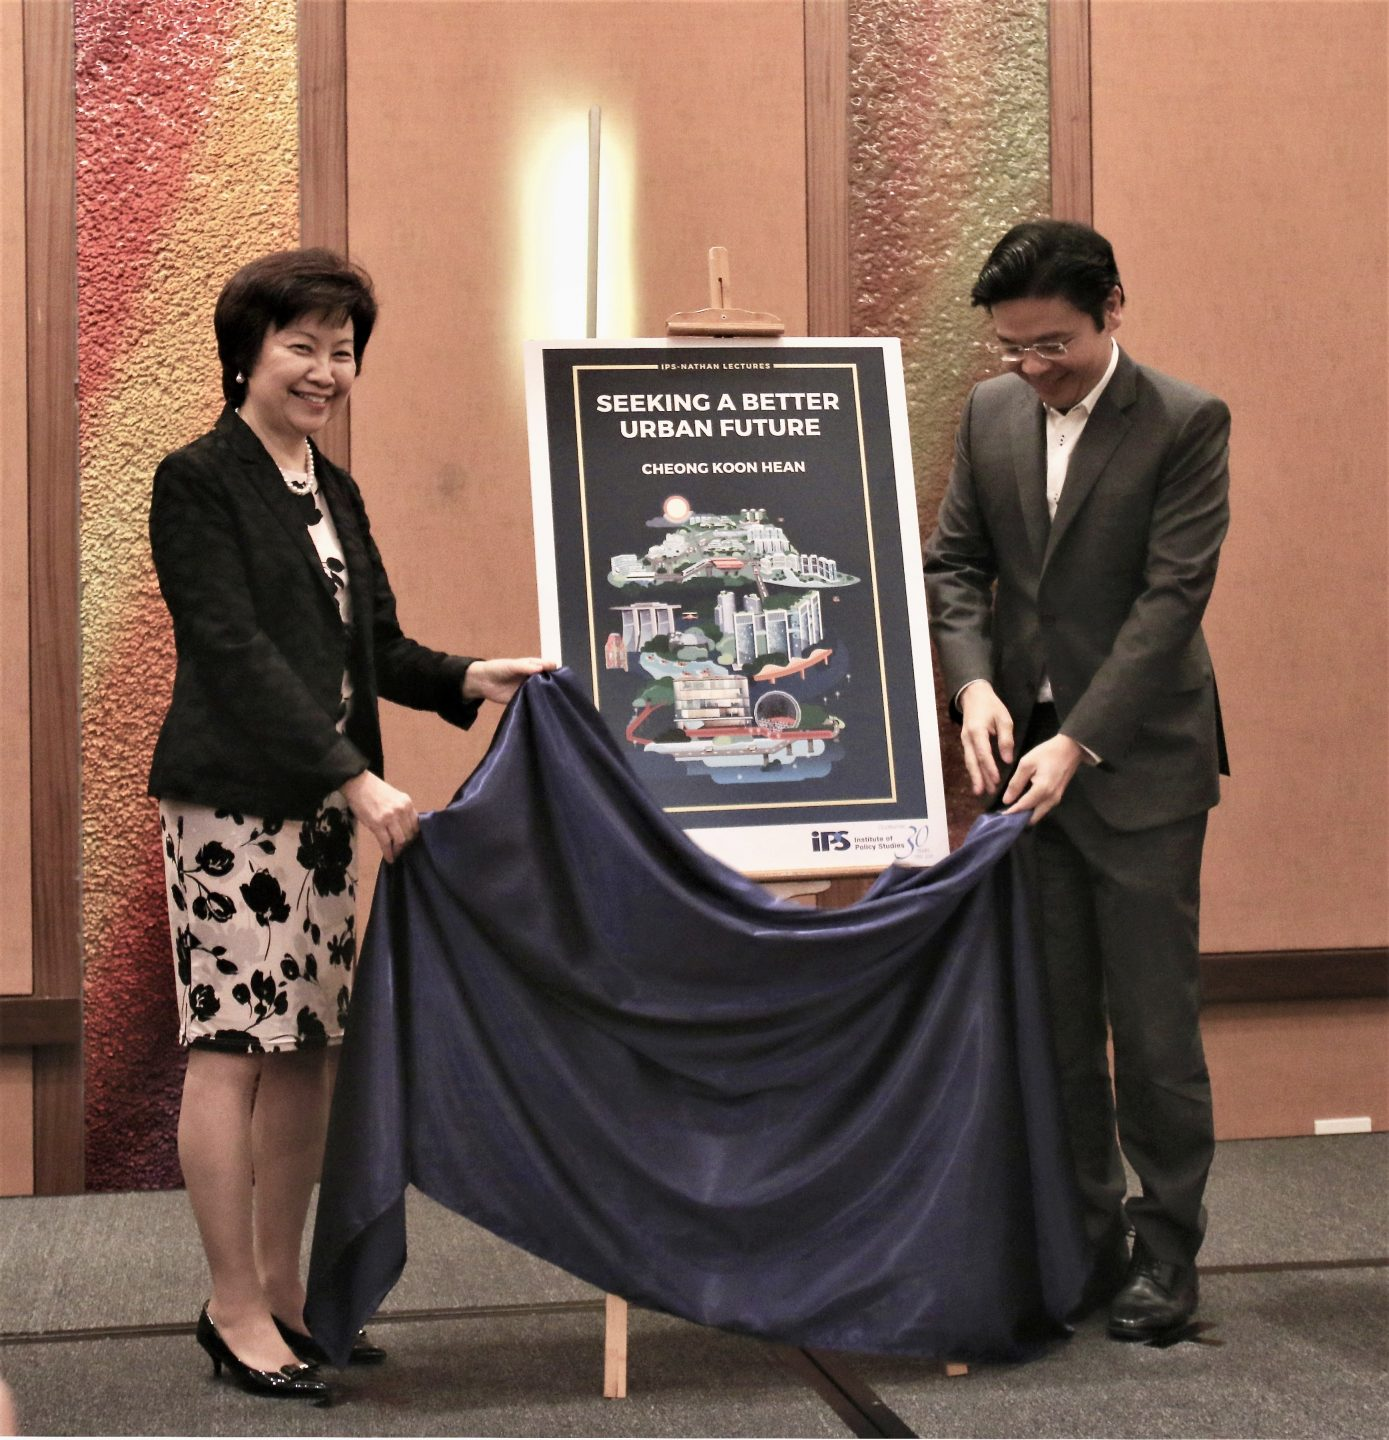 With Minister of National Development Lawrence Wong, the guest of honour at Dr Cheong's book launch in December 2018. Dr Cheong was the Institute of Policy Studies' 2018 SR Nathan Fellow, and delivered three lectures on Seeking A Better Urban Future. The lectures were consolidated into a book.